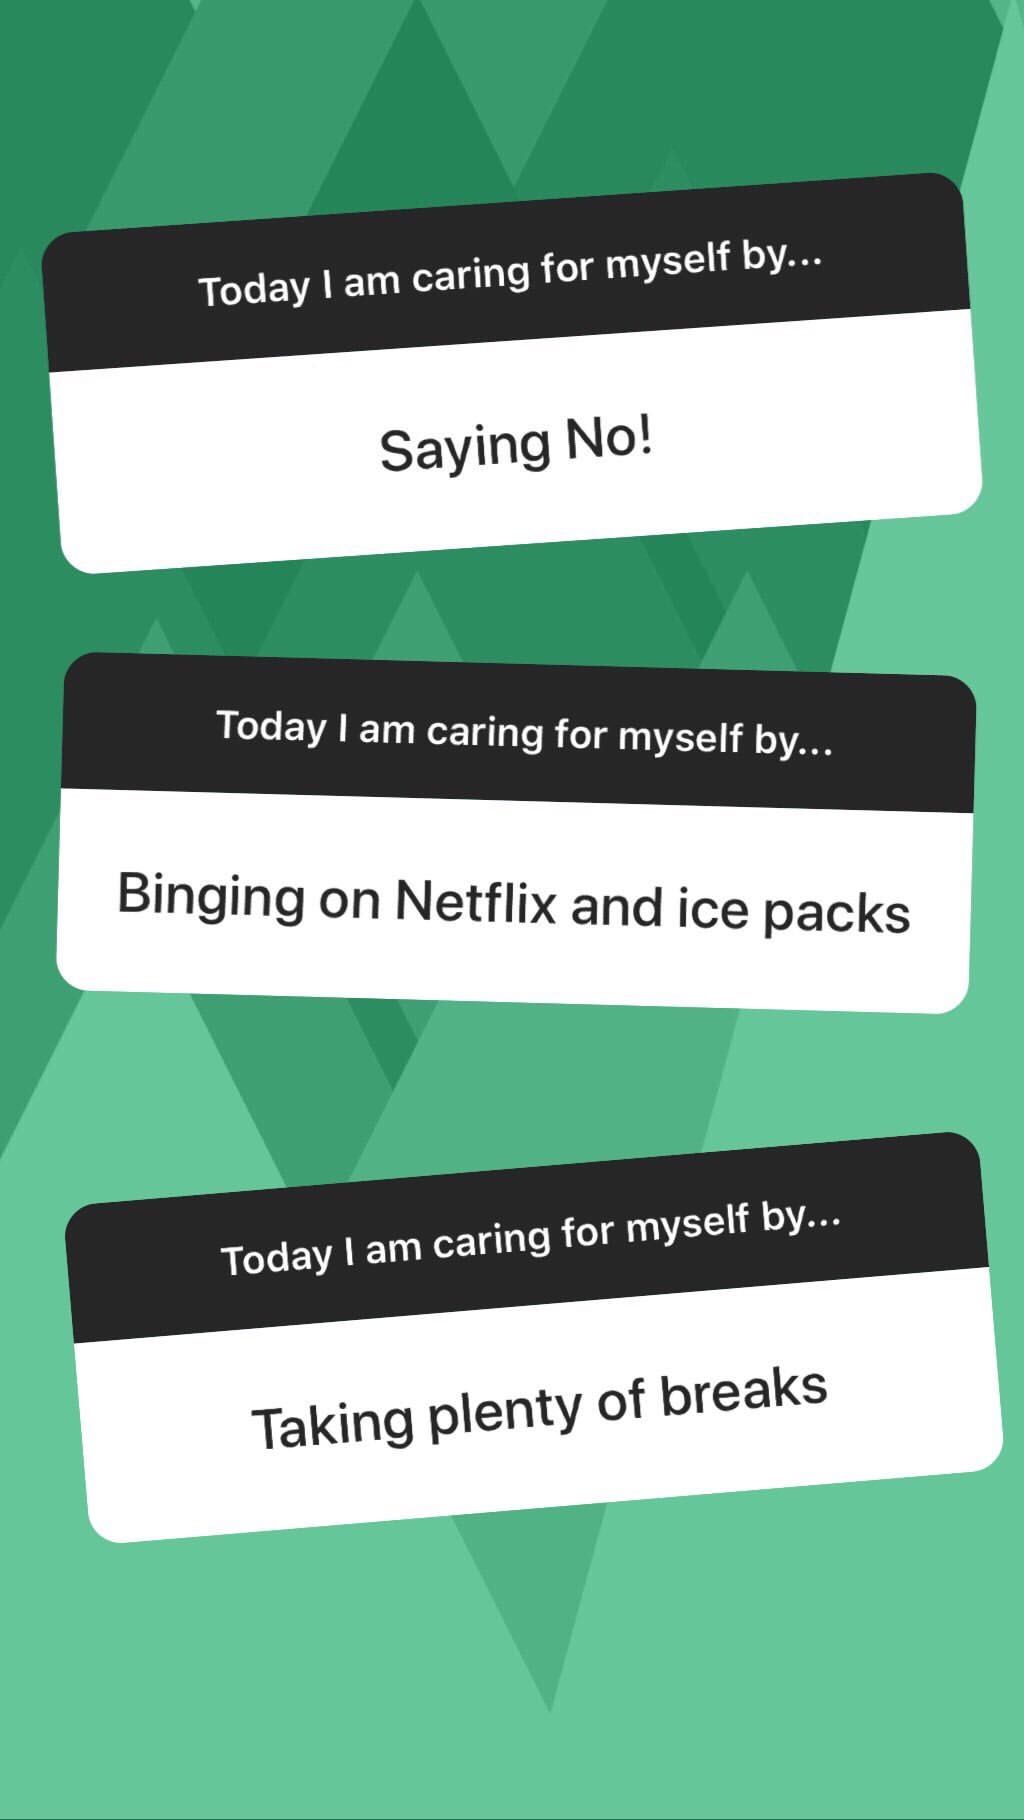 today I am caring for myself by taking plenty of breaks and saying no